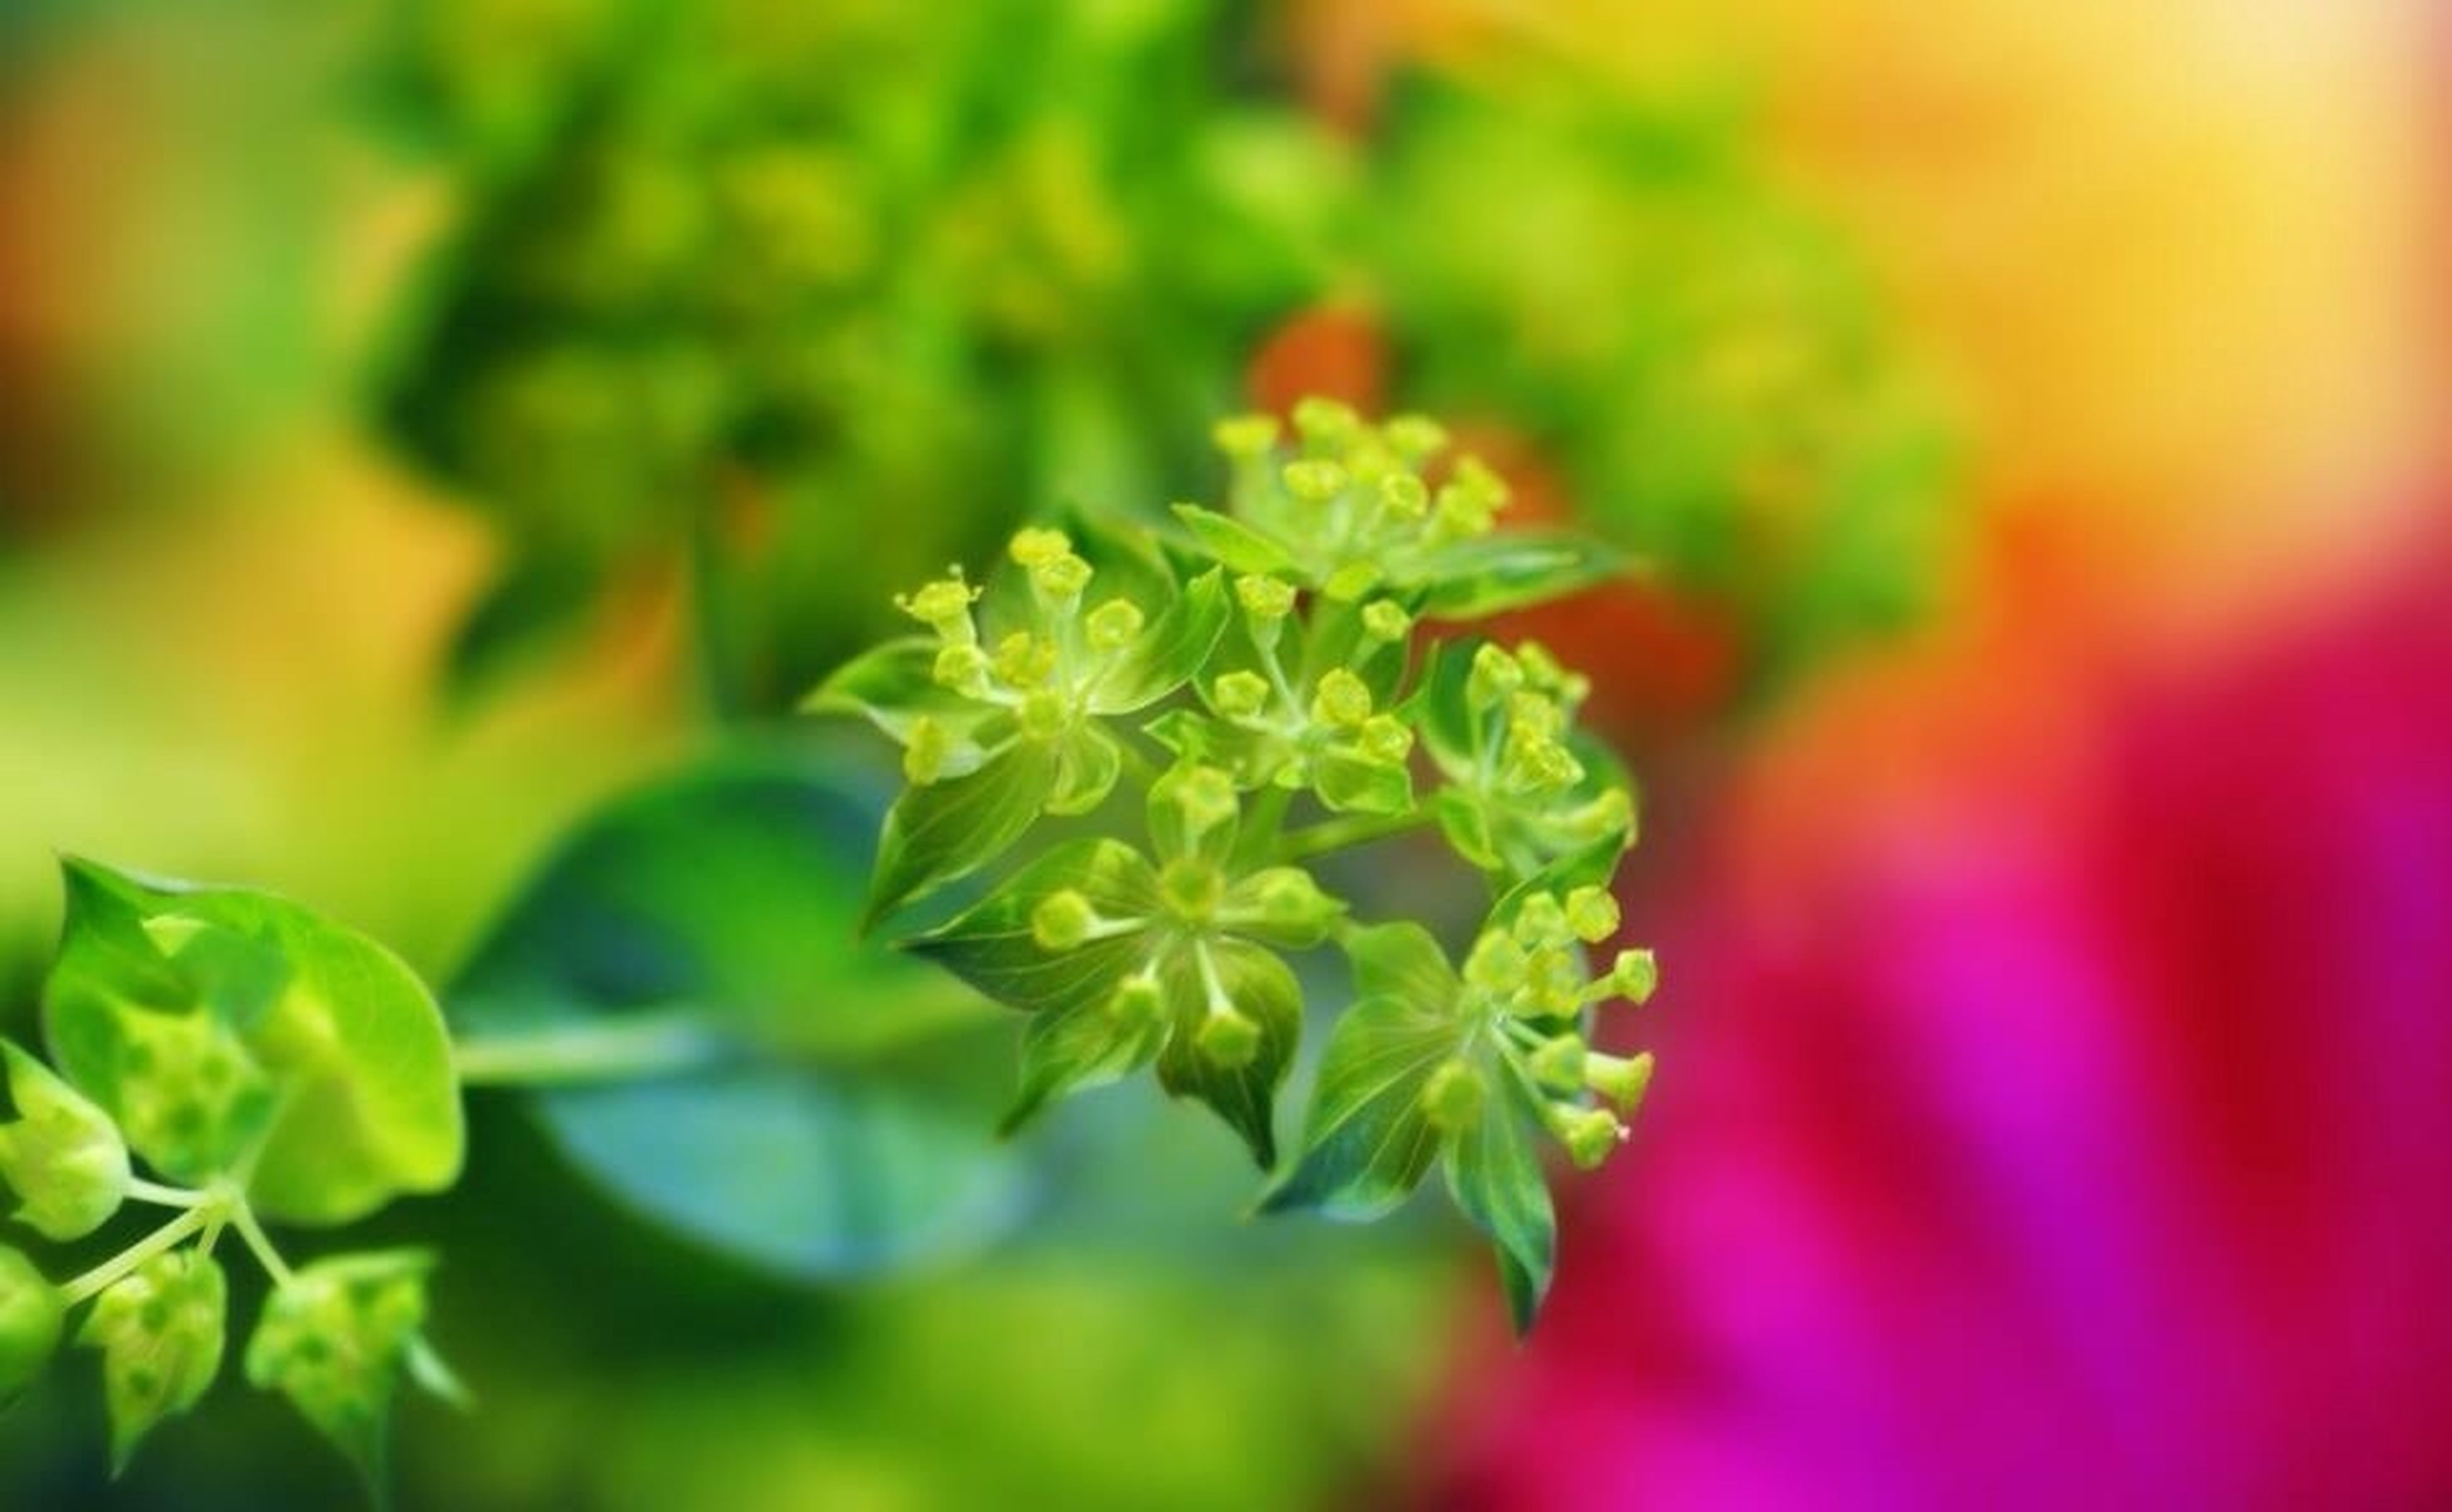 flower, freshness, growth, fragility, petal, beauty in nature, close-up, plant, focus on foreground, selective focus, nature, flower head, blooming, green color, leaf, bud, in bloom, stem, park - man made space, botany